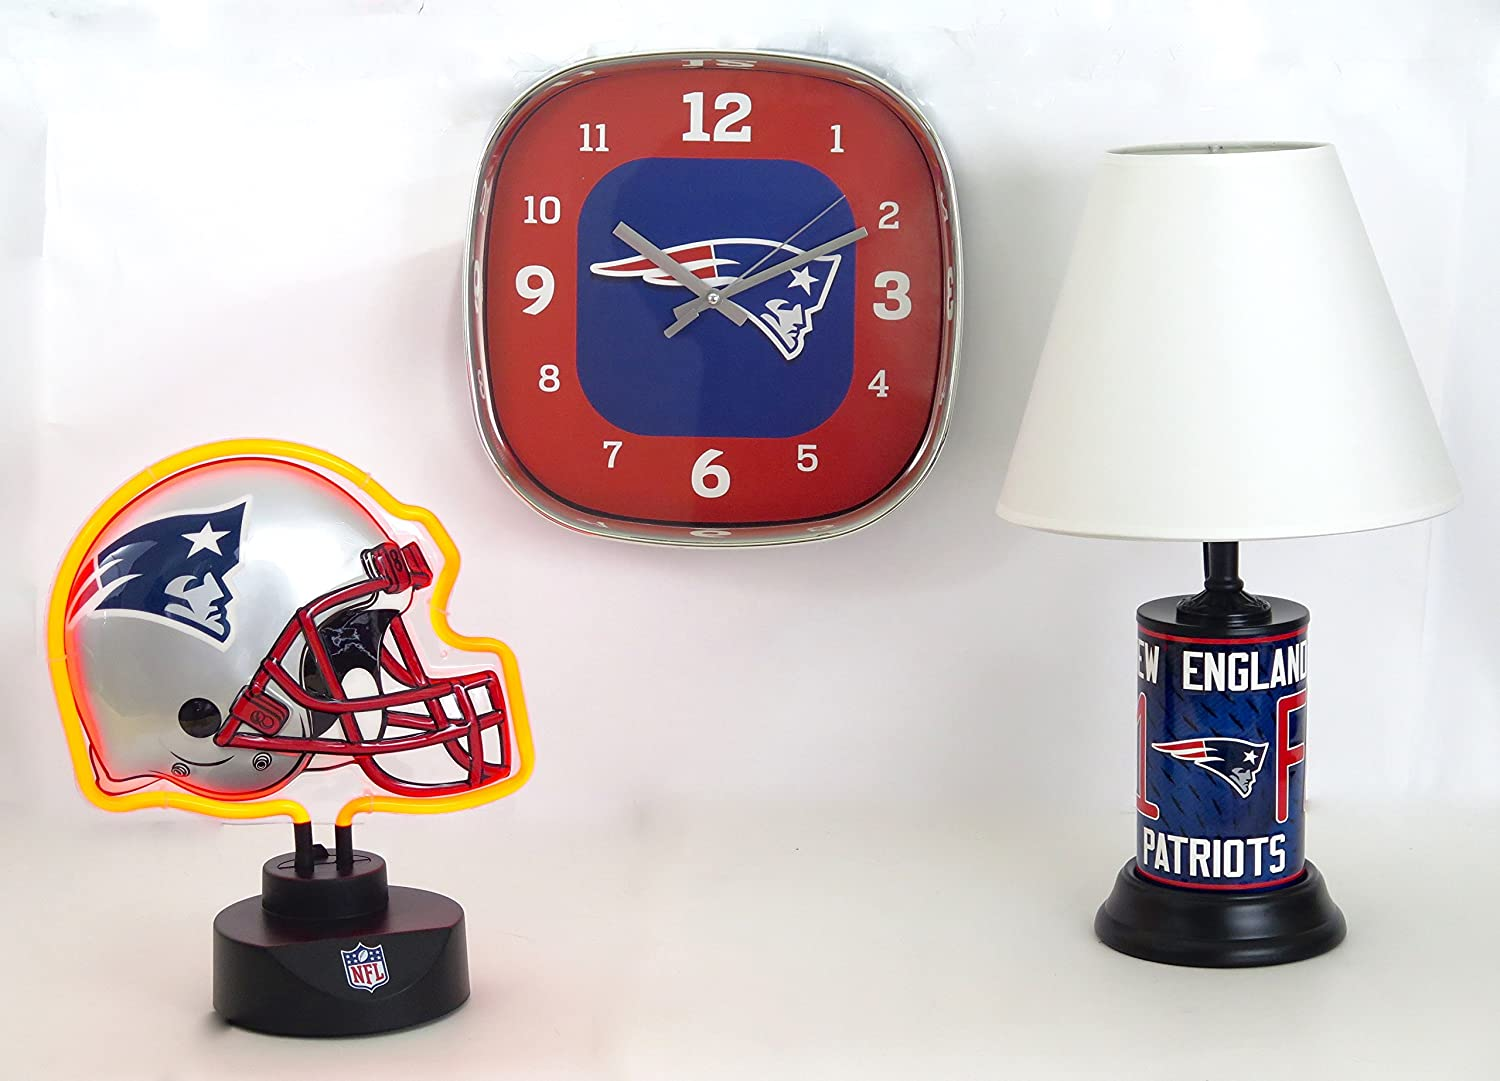 New England Patriots、ヘルメット形状ネオンランプデスクランプ、Walkクロックホームのコアコレクション。Outstanding Accents for Family RoomまたはMan Cave。GREAT GIFT FOR DAD on父の日。   B07D7HG1X8